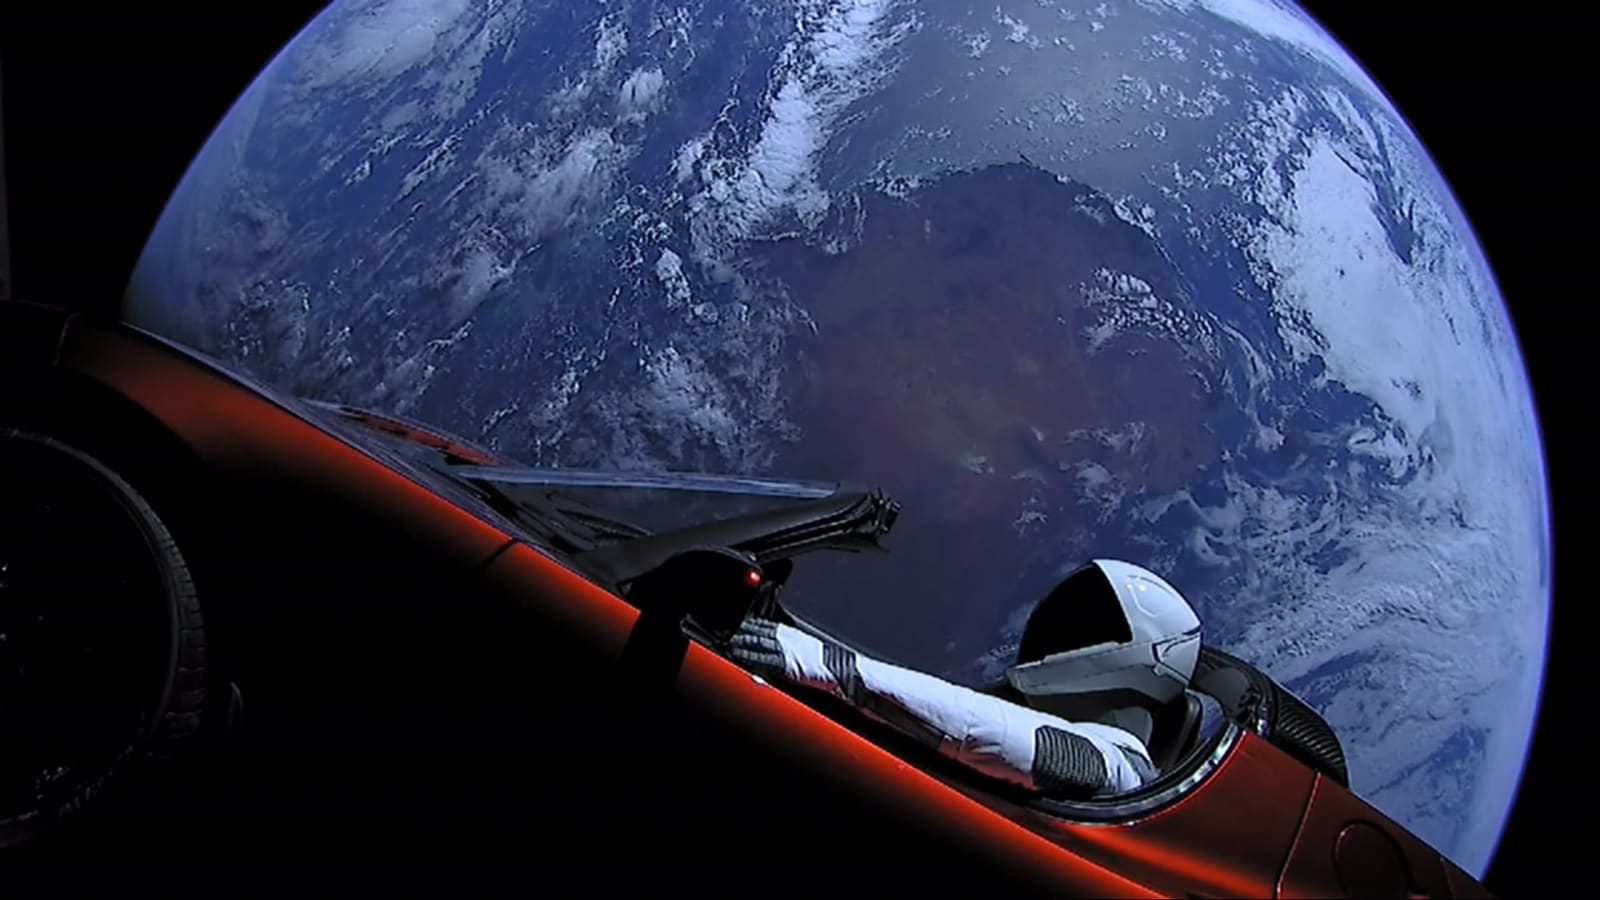 Falcon Heavy and Cars in Space-Good Outreach and Beyond